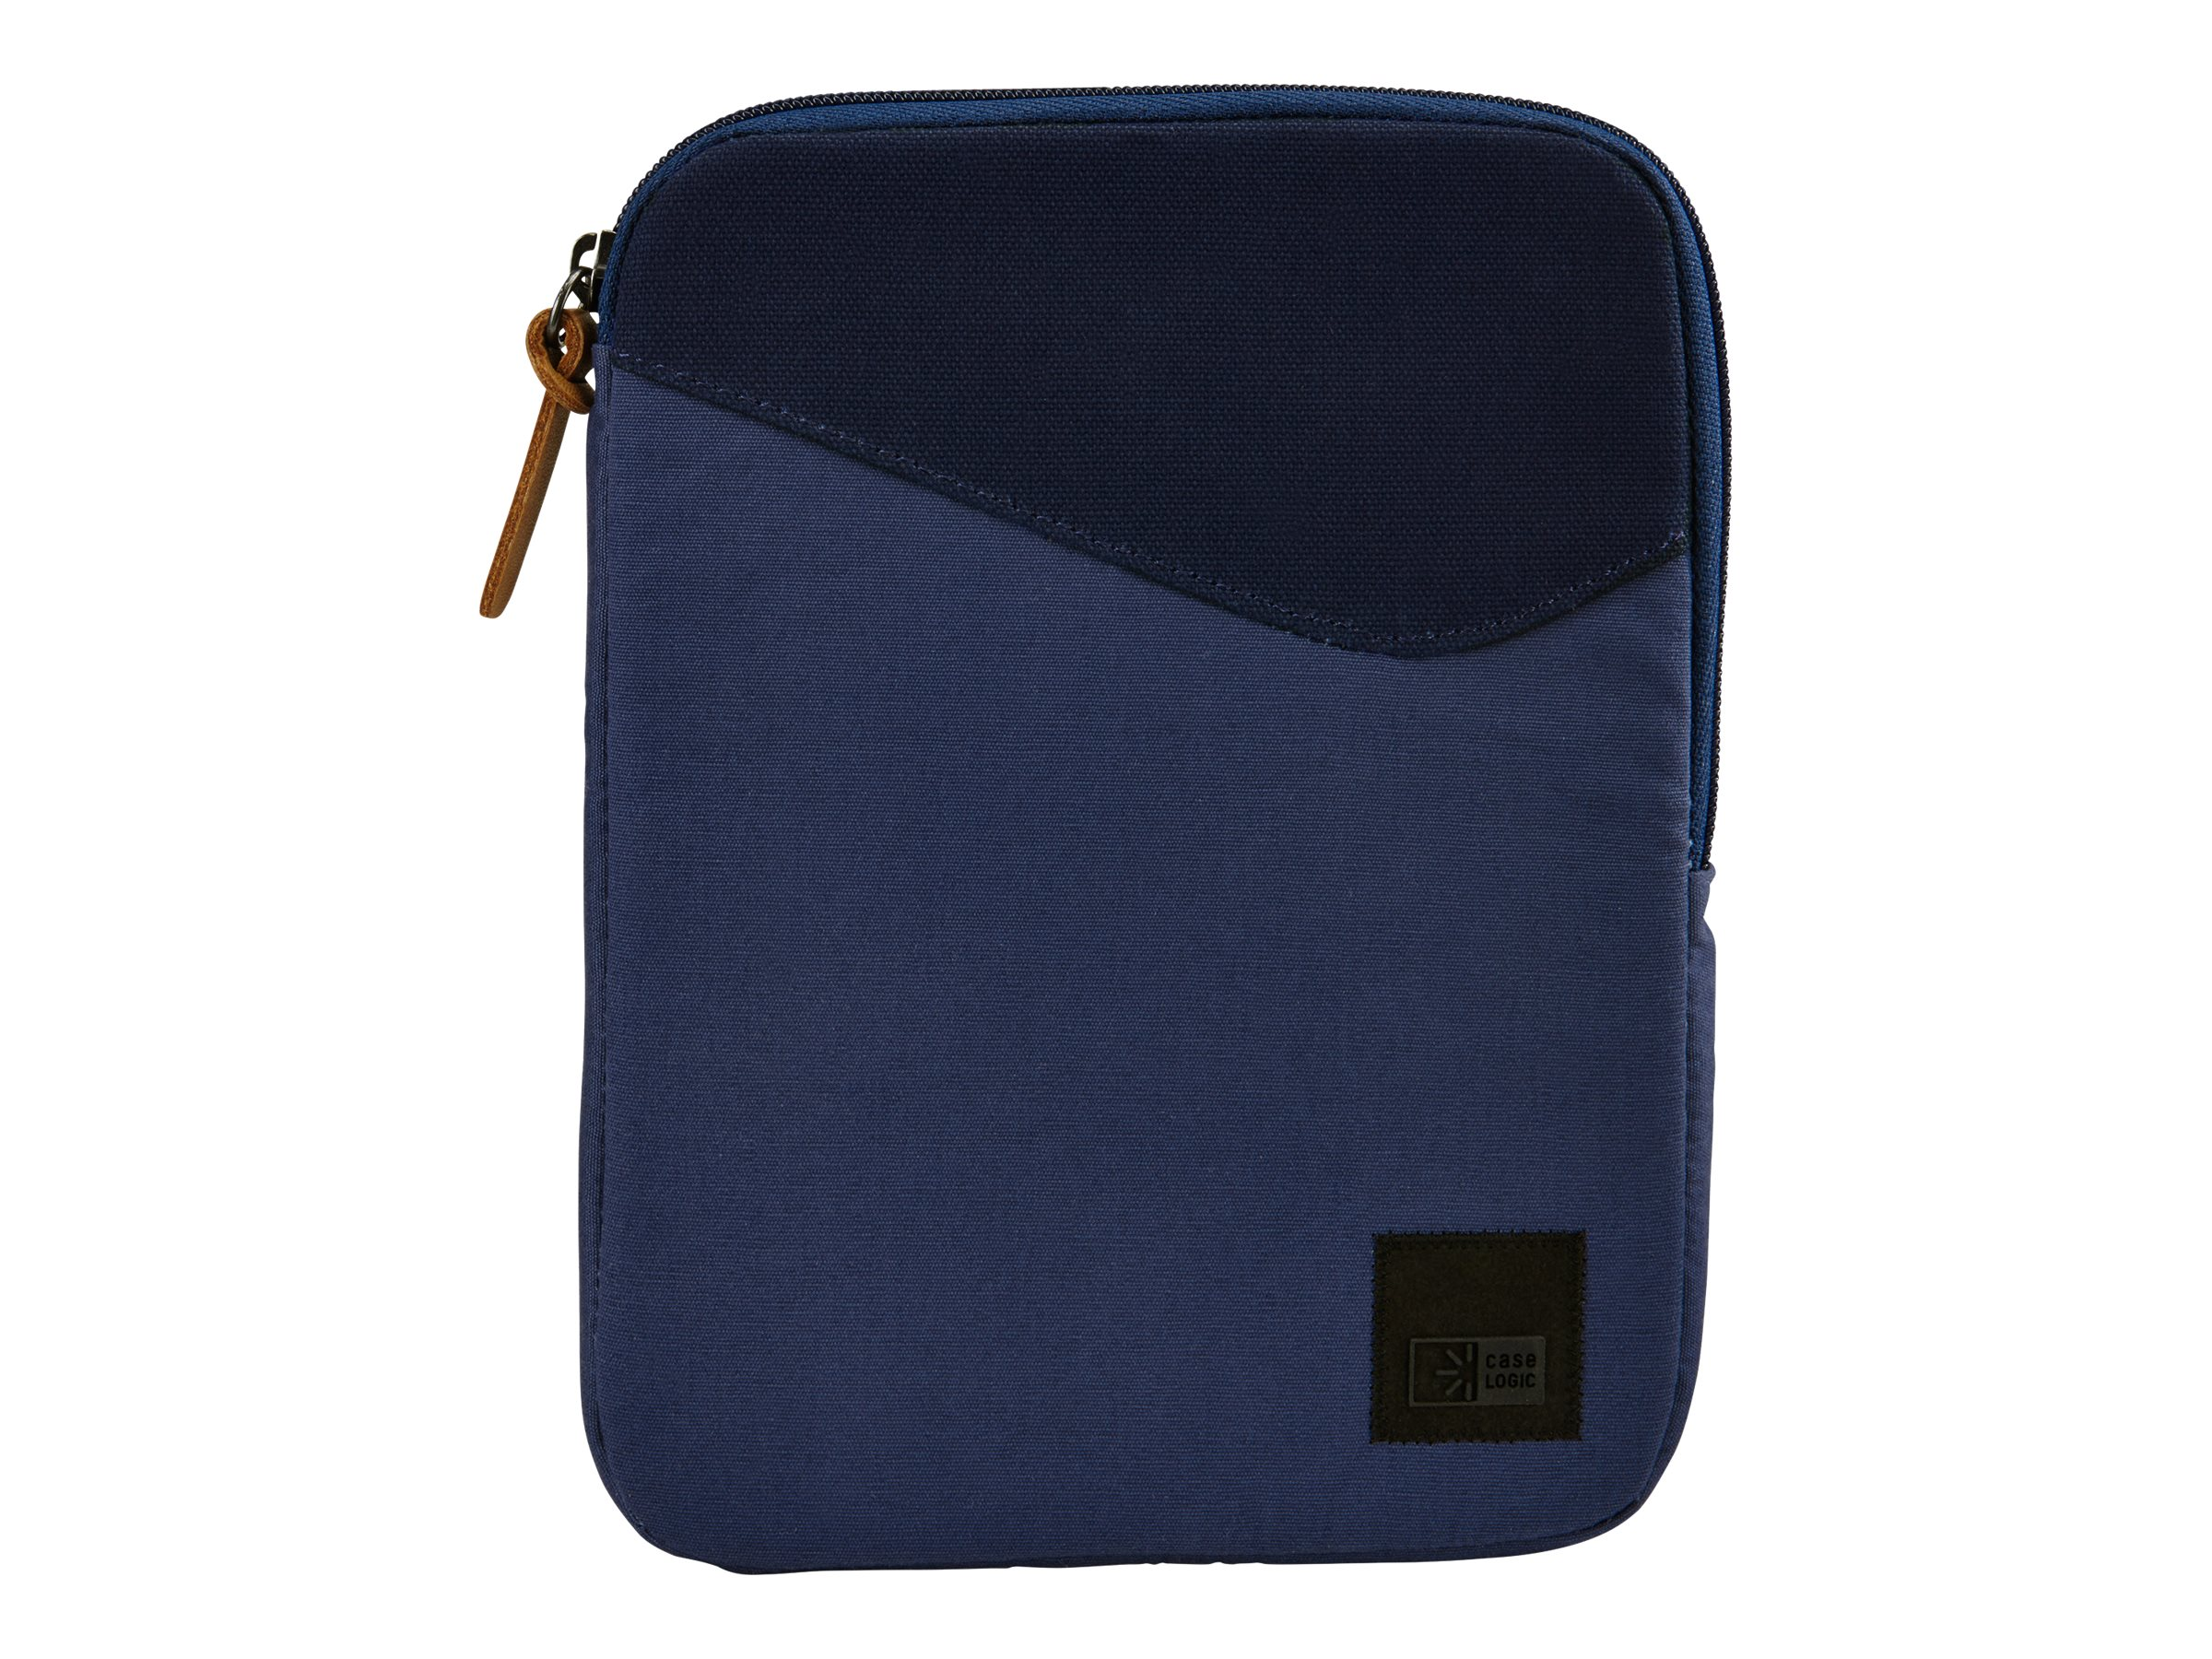 Case Logic LoDo 8 Laptop Sleeve, Blue, LODS108BLUE, 30639331, Carrying Cases - Notebook